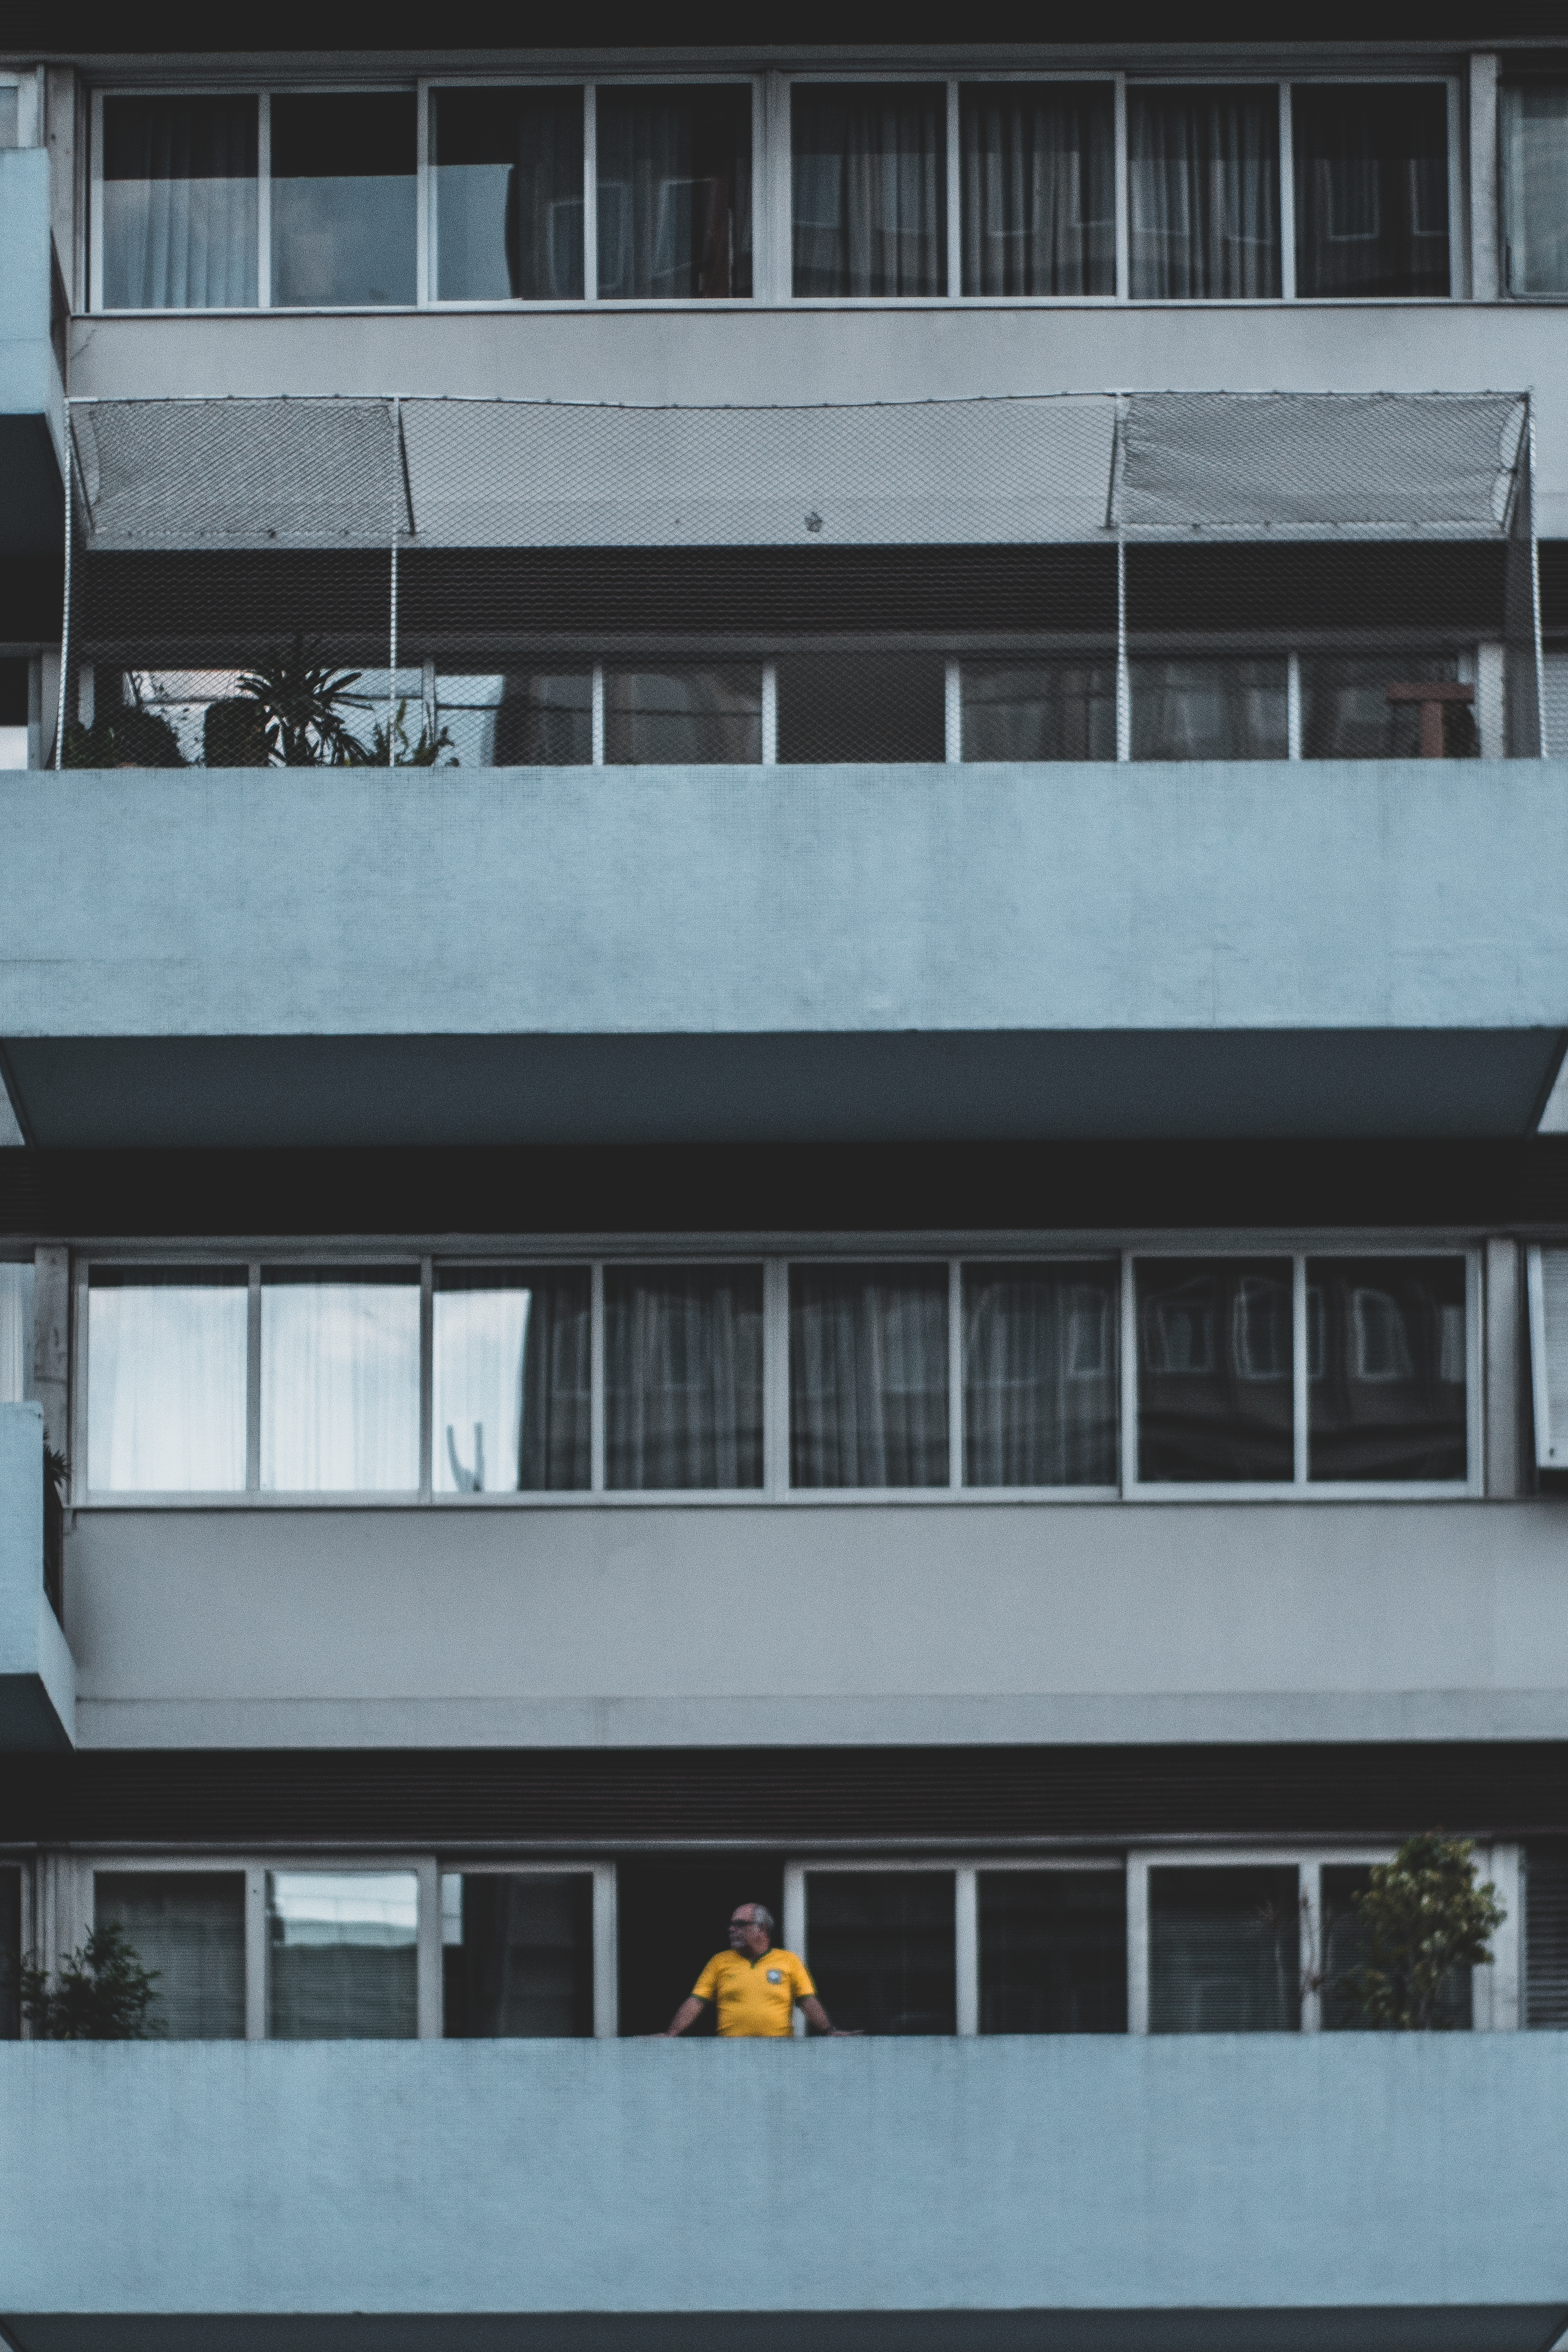 Person Leaning on Terrace of a Building